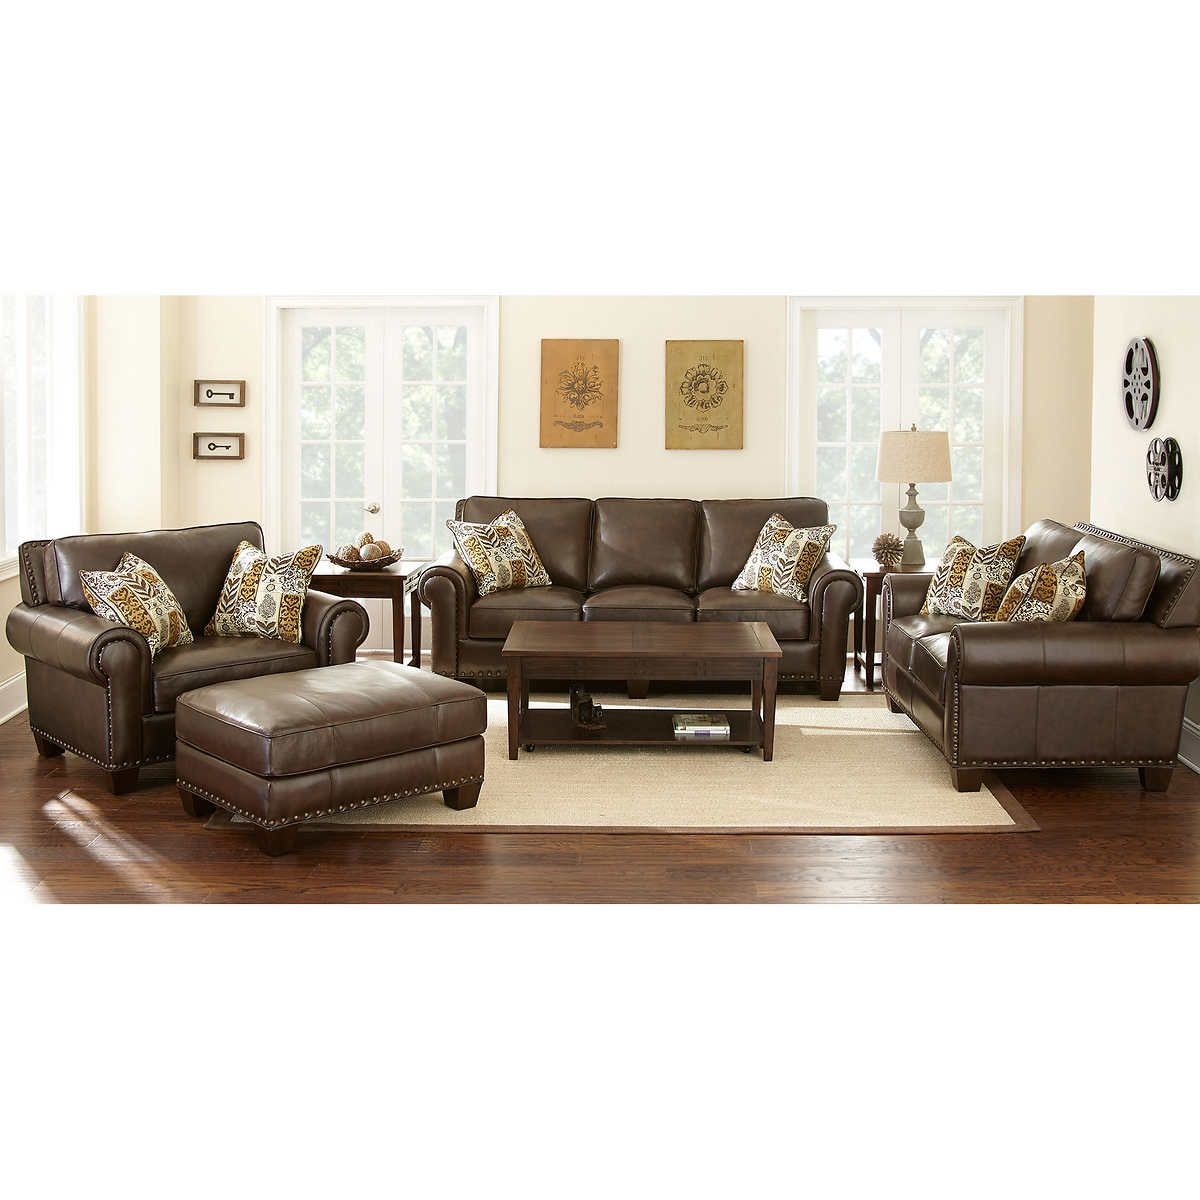 Natuzzi Group Leather Sofa Costco With Down Filled Cushions Name Brand Sofas | Www.energywarden.net